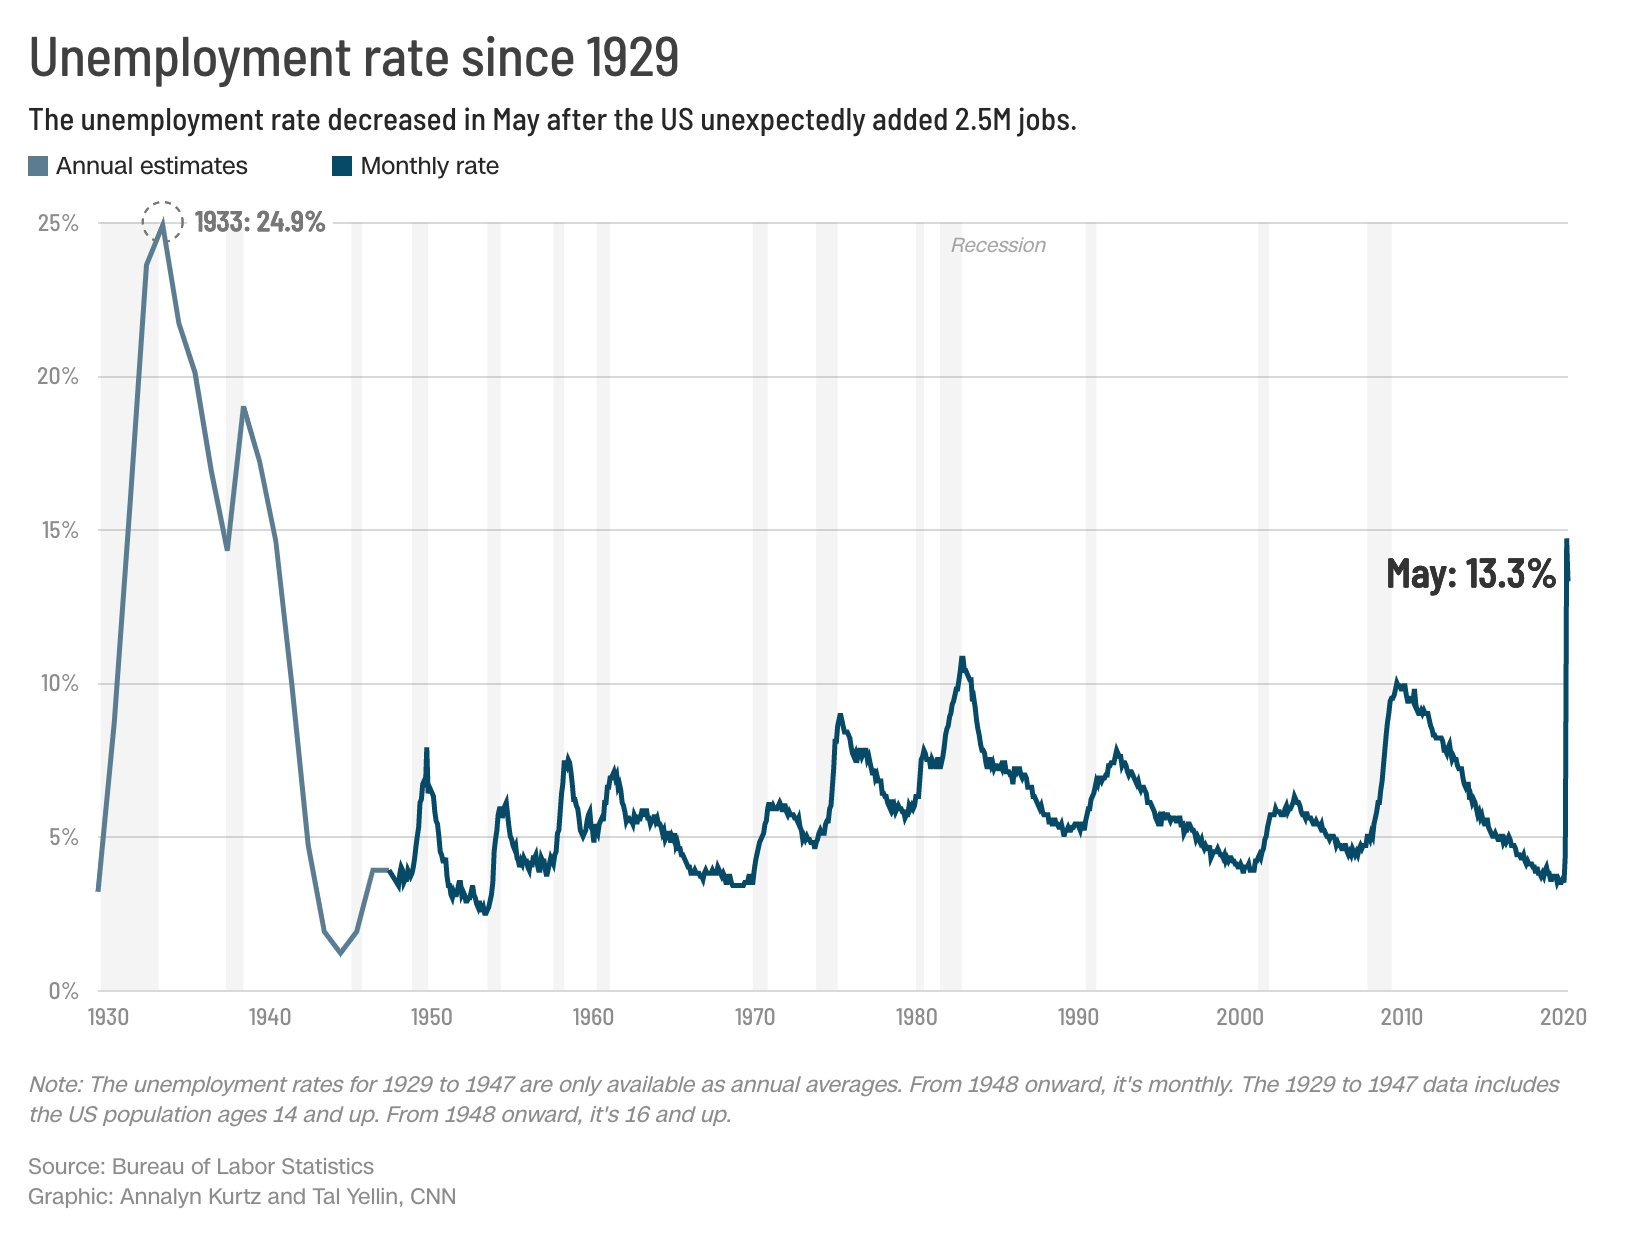 America's unemployment rate falls to 13.3% as economy posts surprise job gains